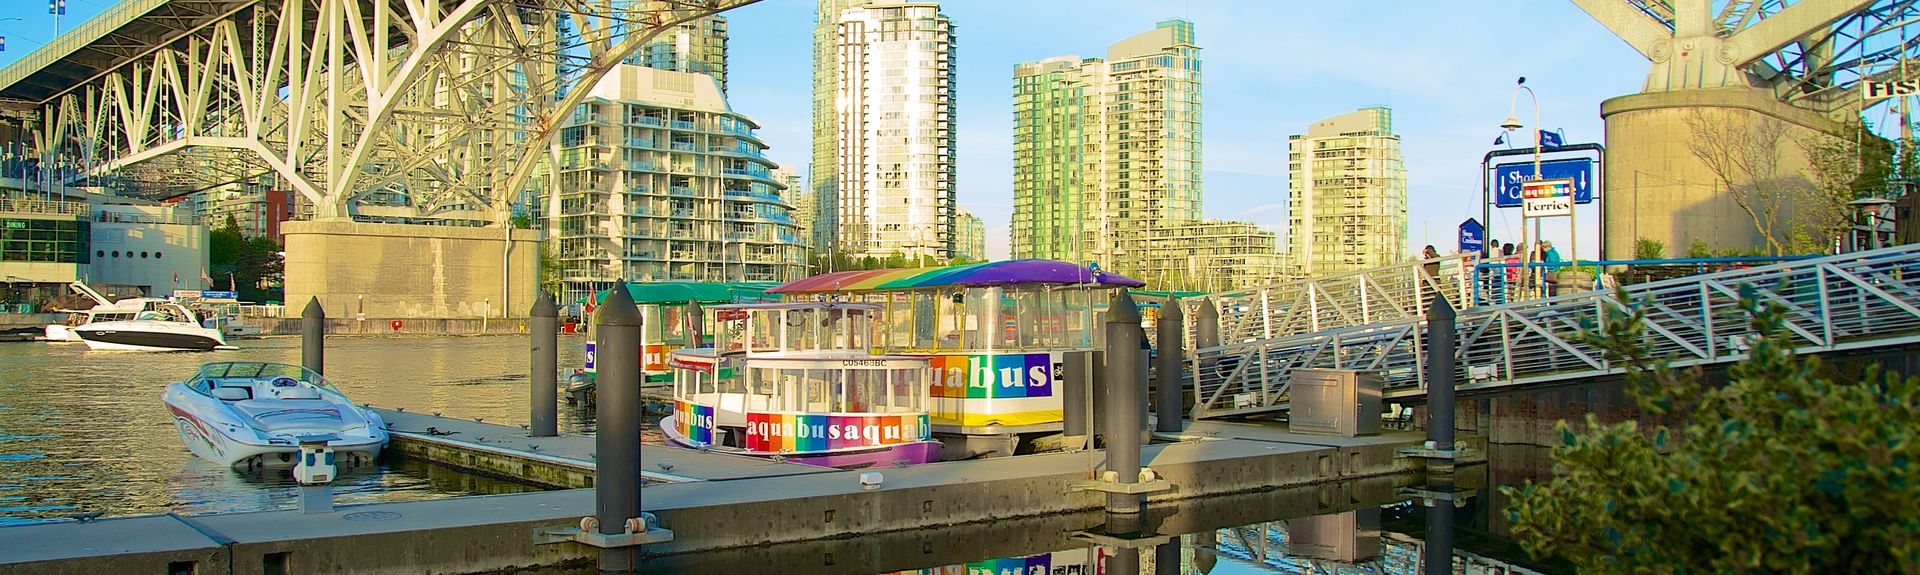 South Cambie, Vancouver, British Columbia, Kanada